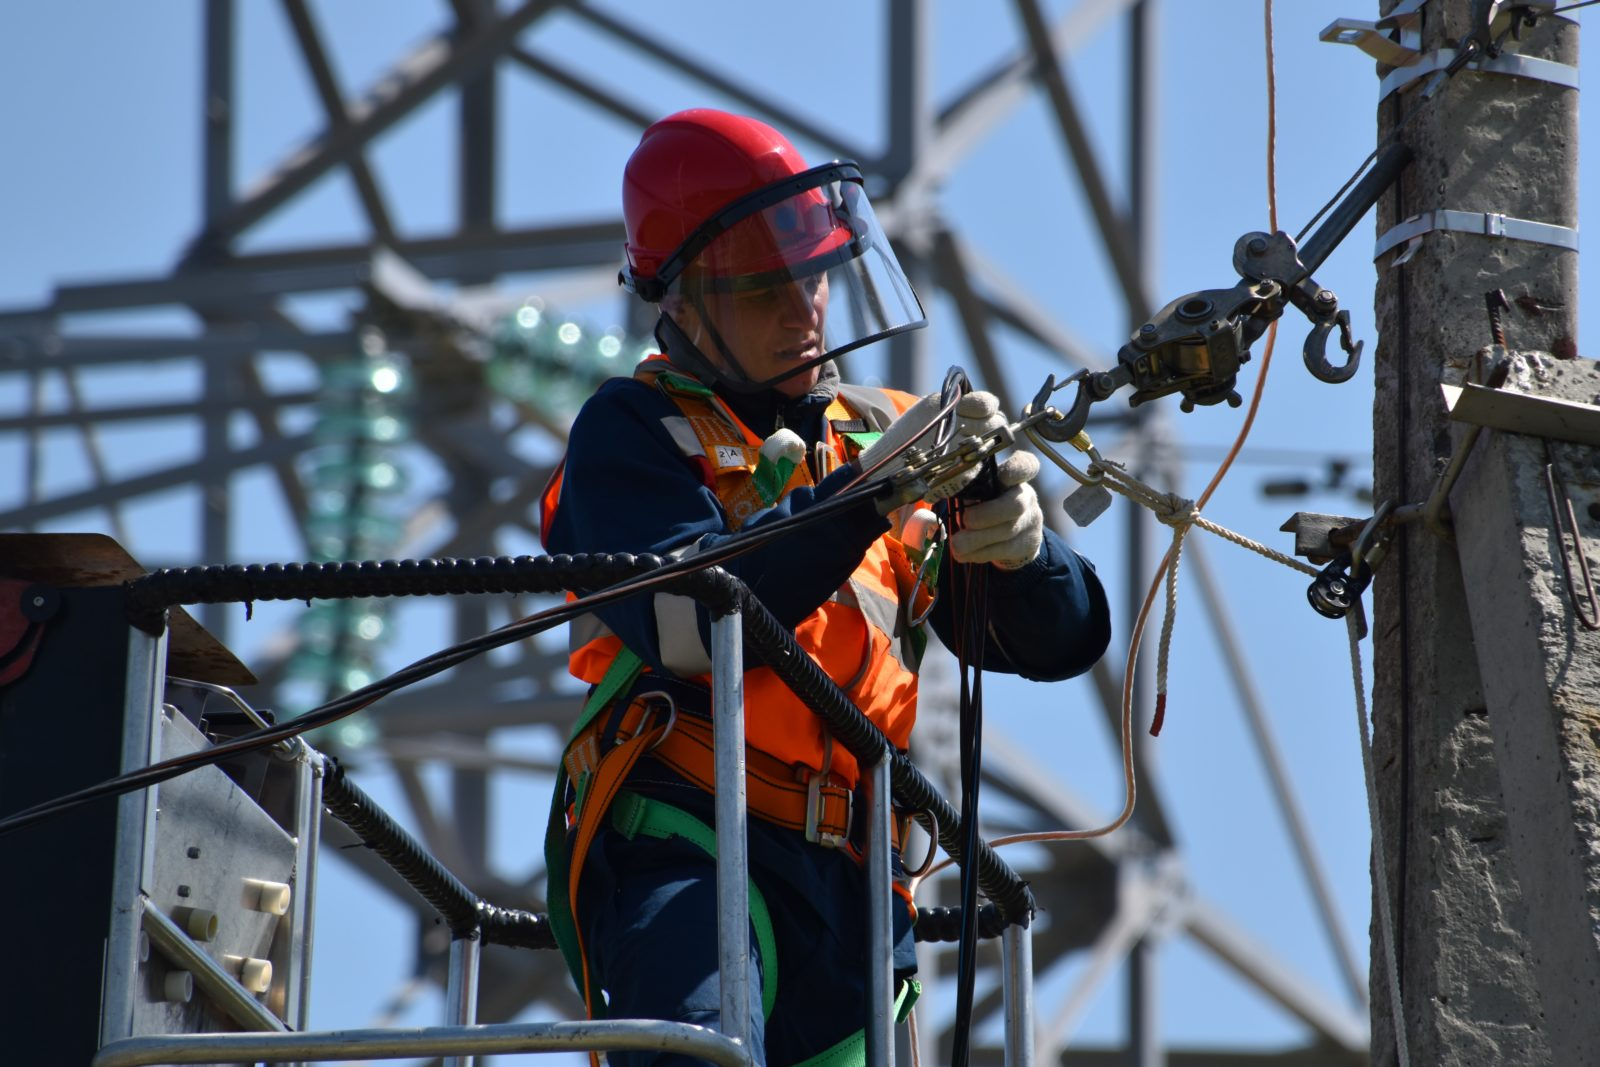 Electrician working high up on a power line wearing proper hard hat, gloves, safety vest, and harness.